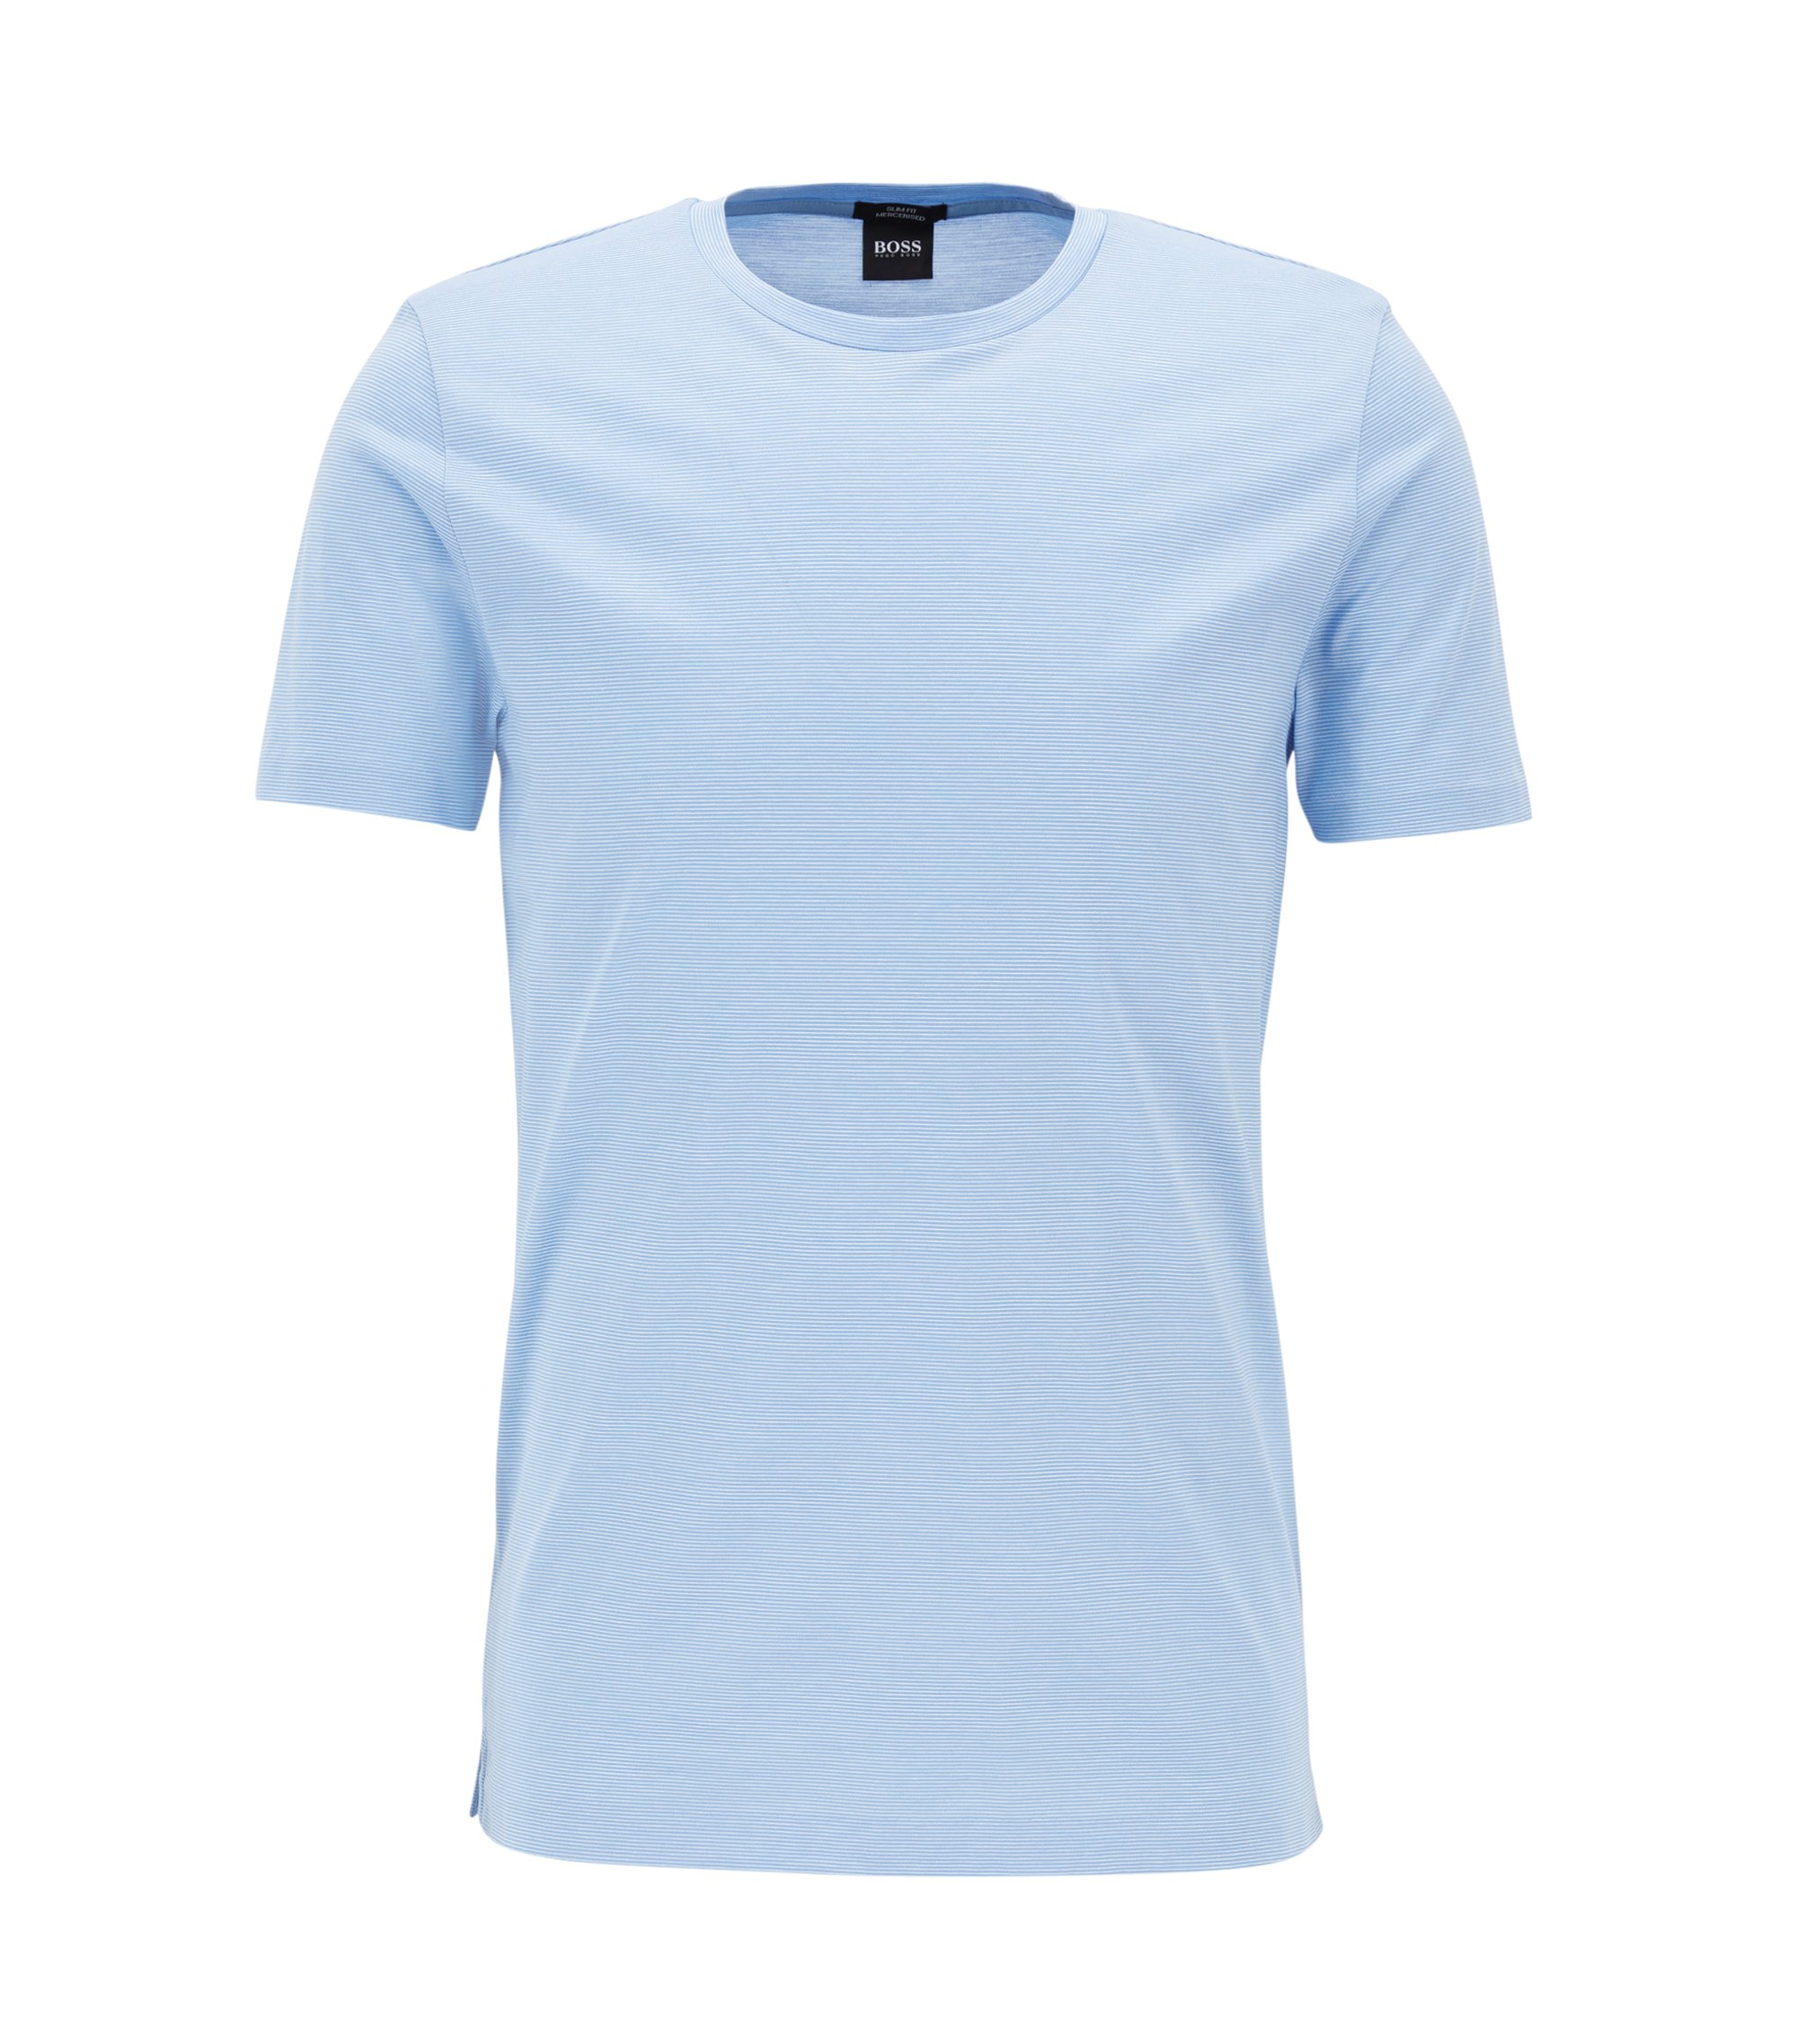 T-shirt Slim Fit en coton mercerisé, Bleu vif